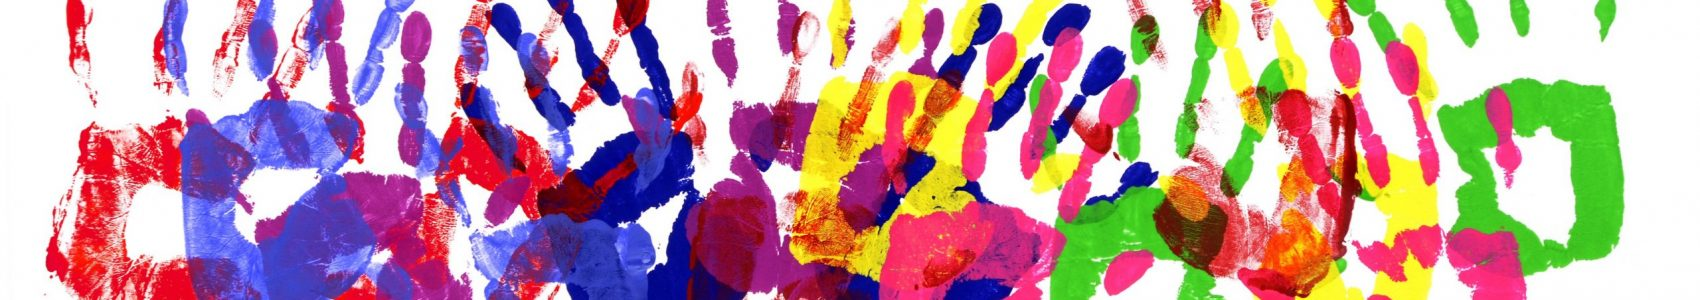 Horizontal border pattern of child handprints made from vivid acrylic paint isolated on a white paper background.